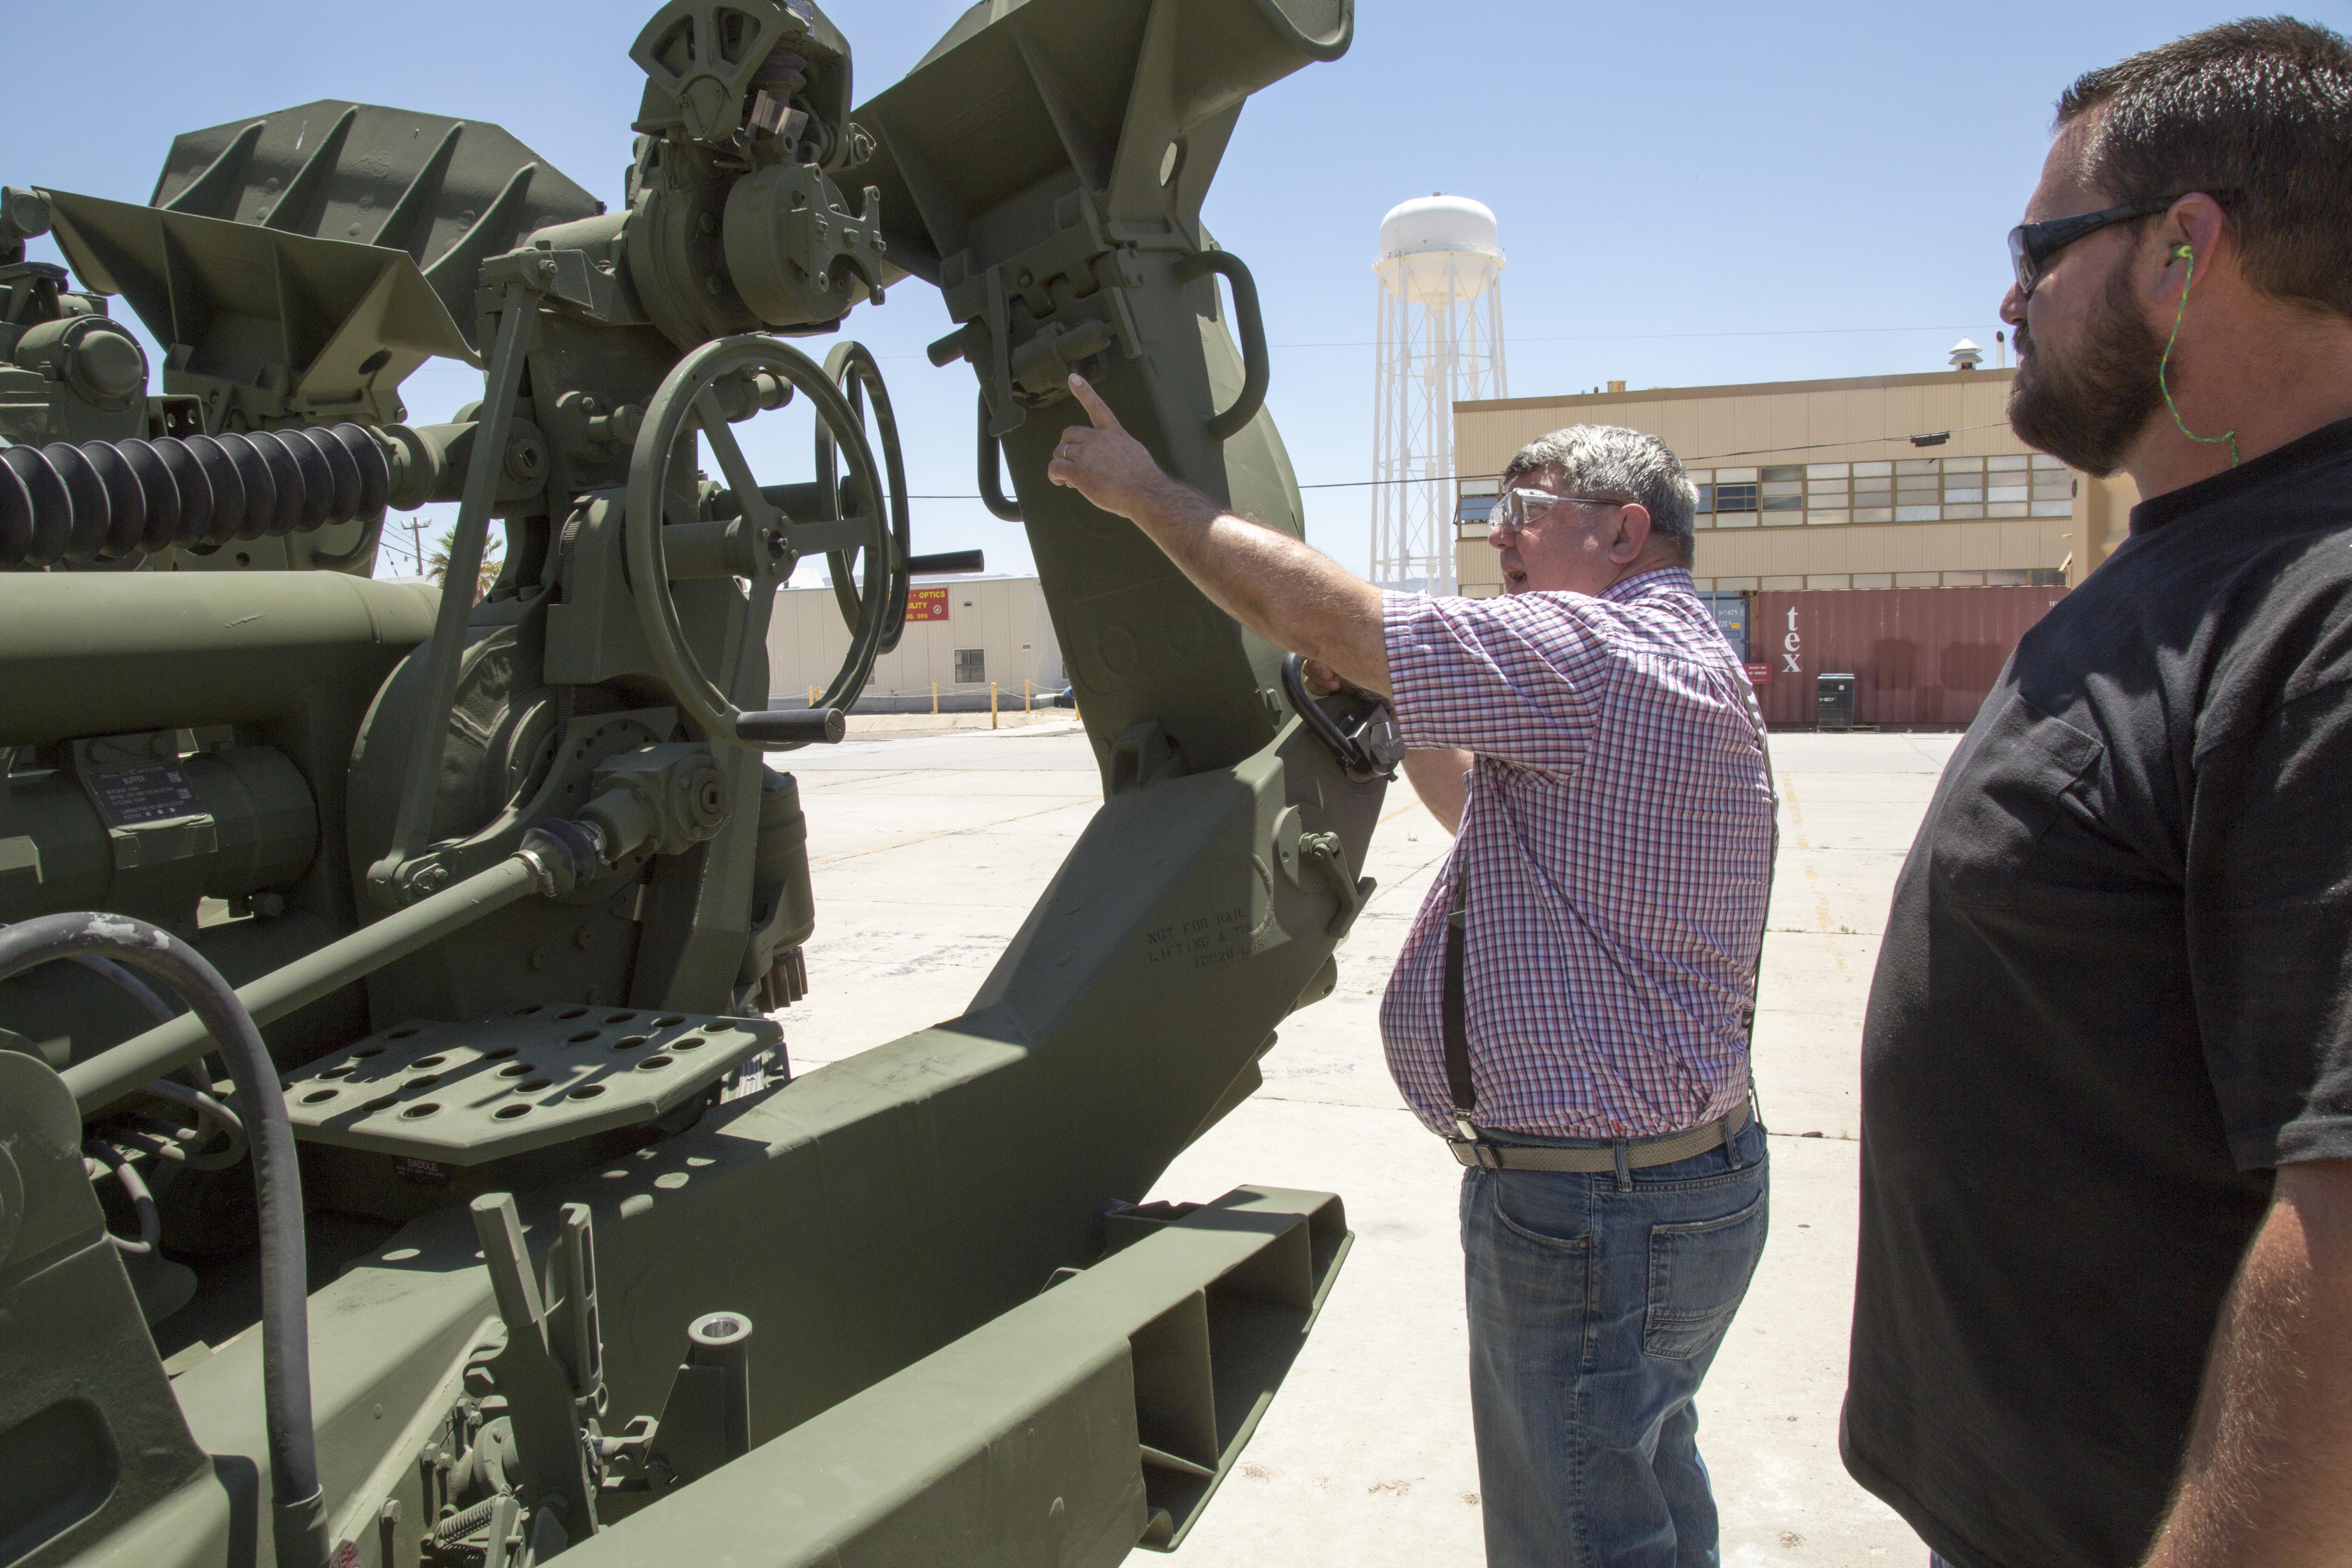 Lift guns used to train helicopter pilots